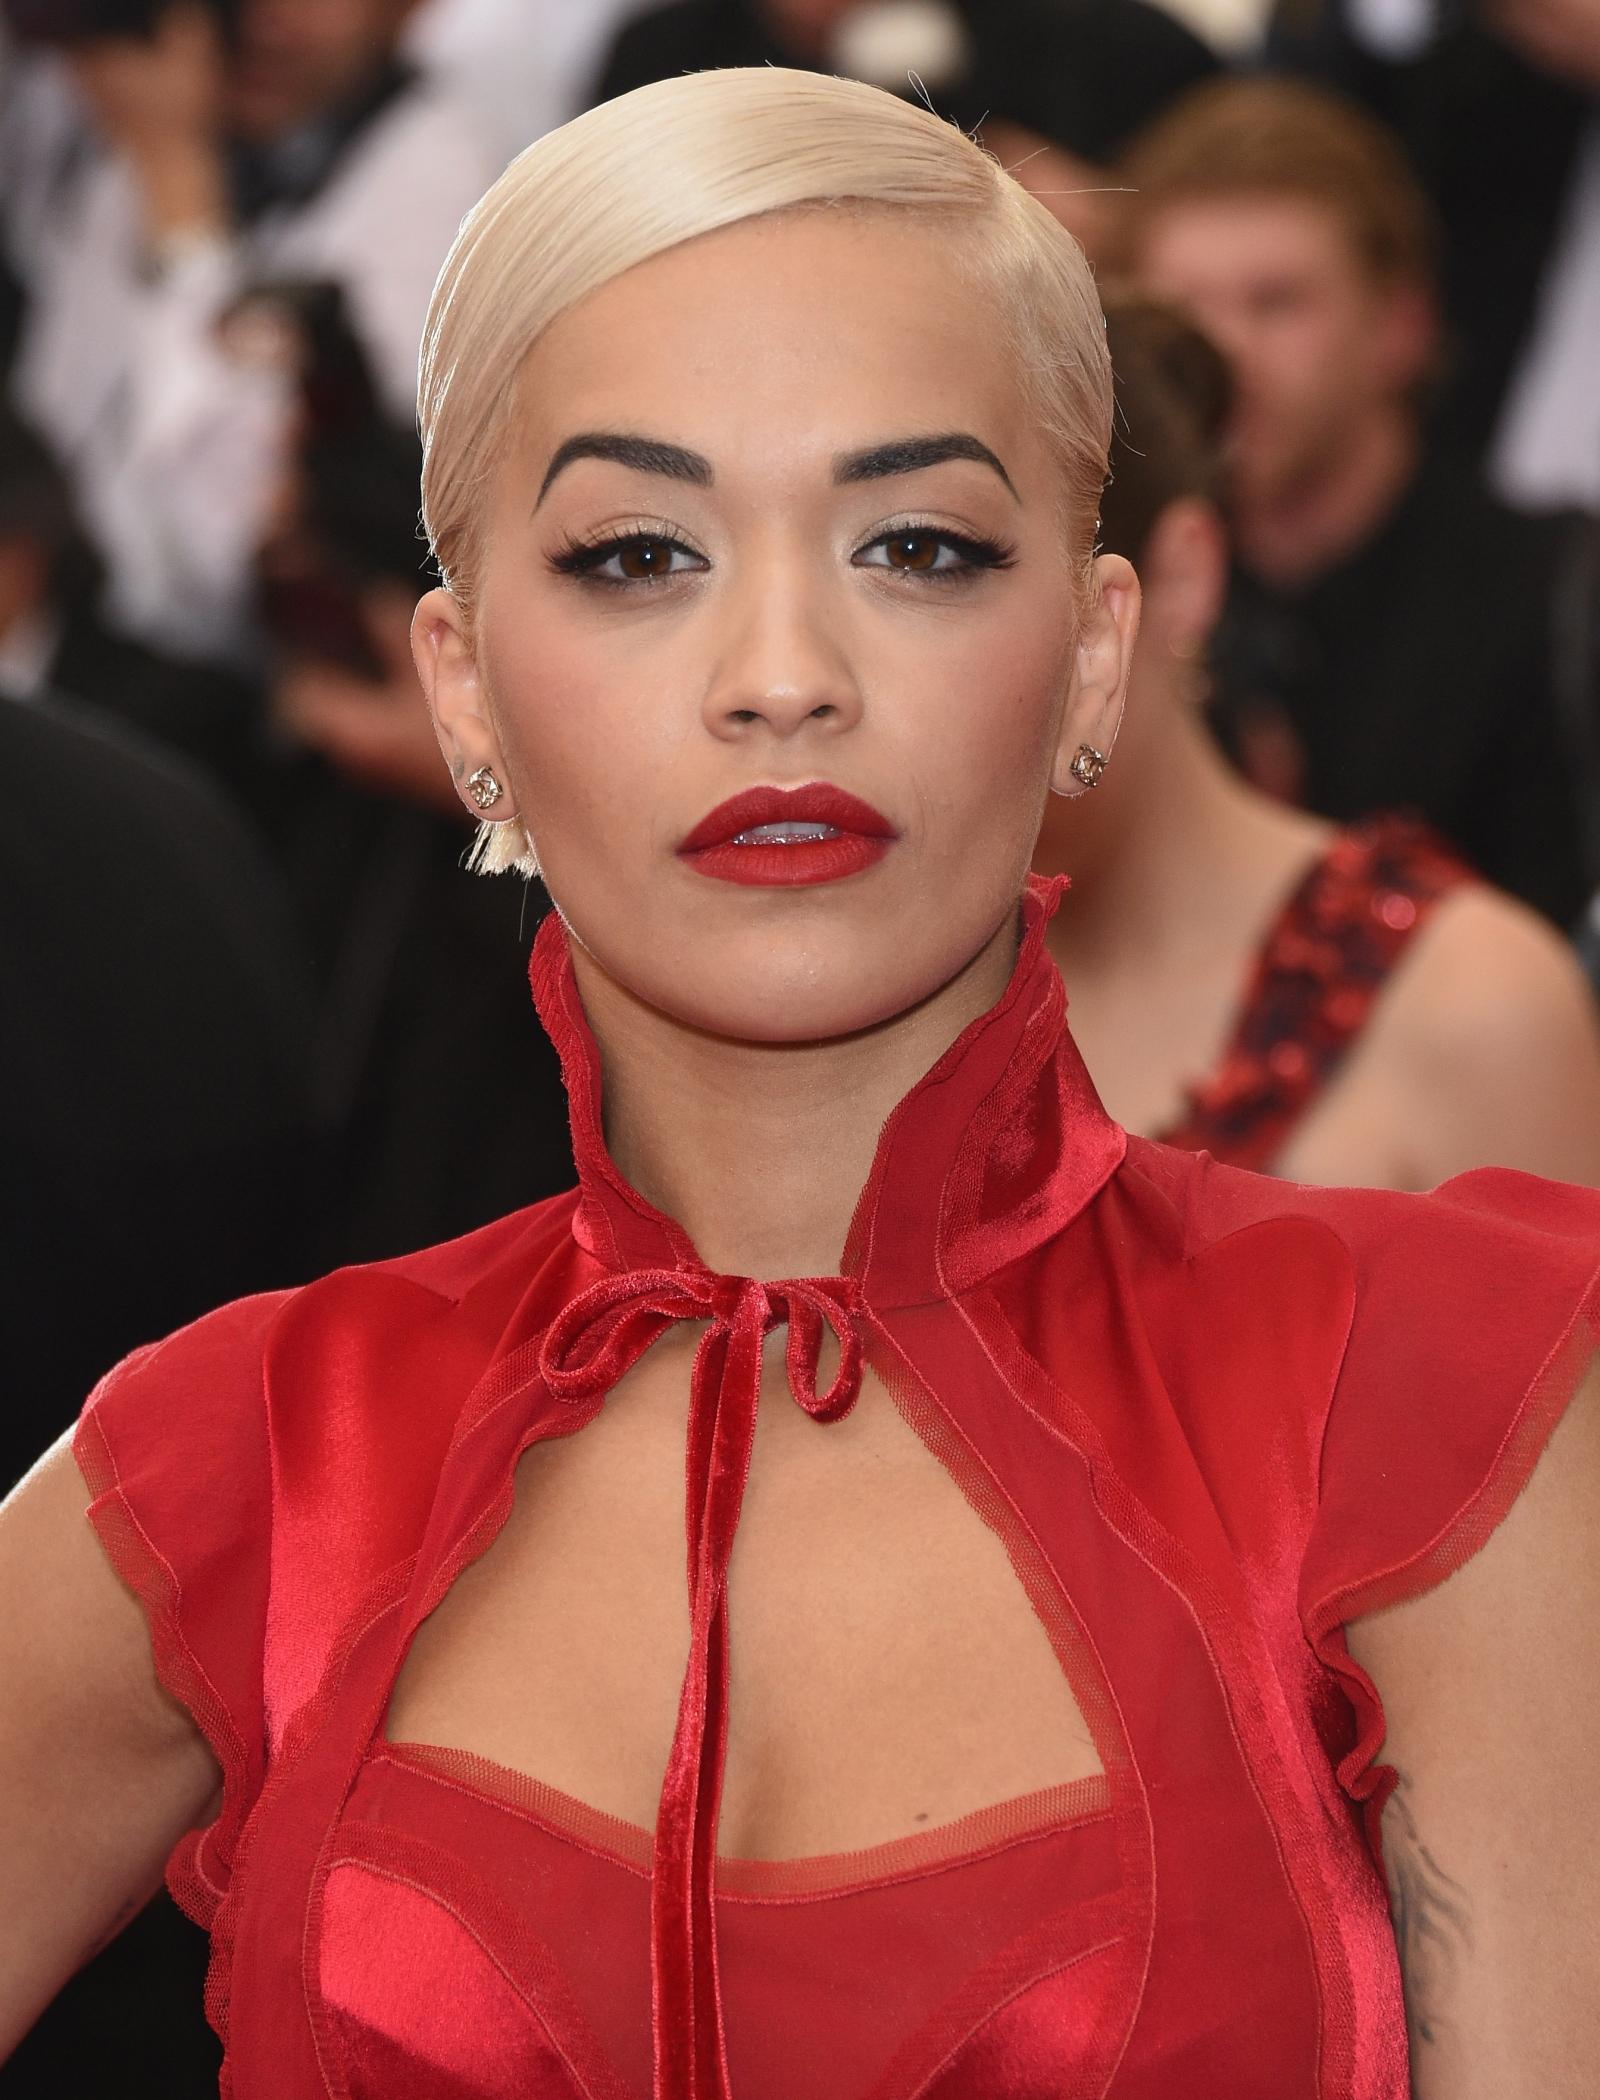 Rita Ora The X Factor UK judge